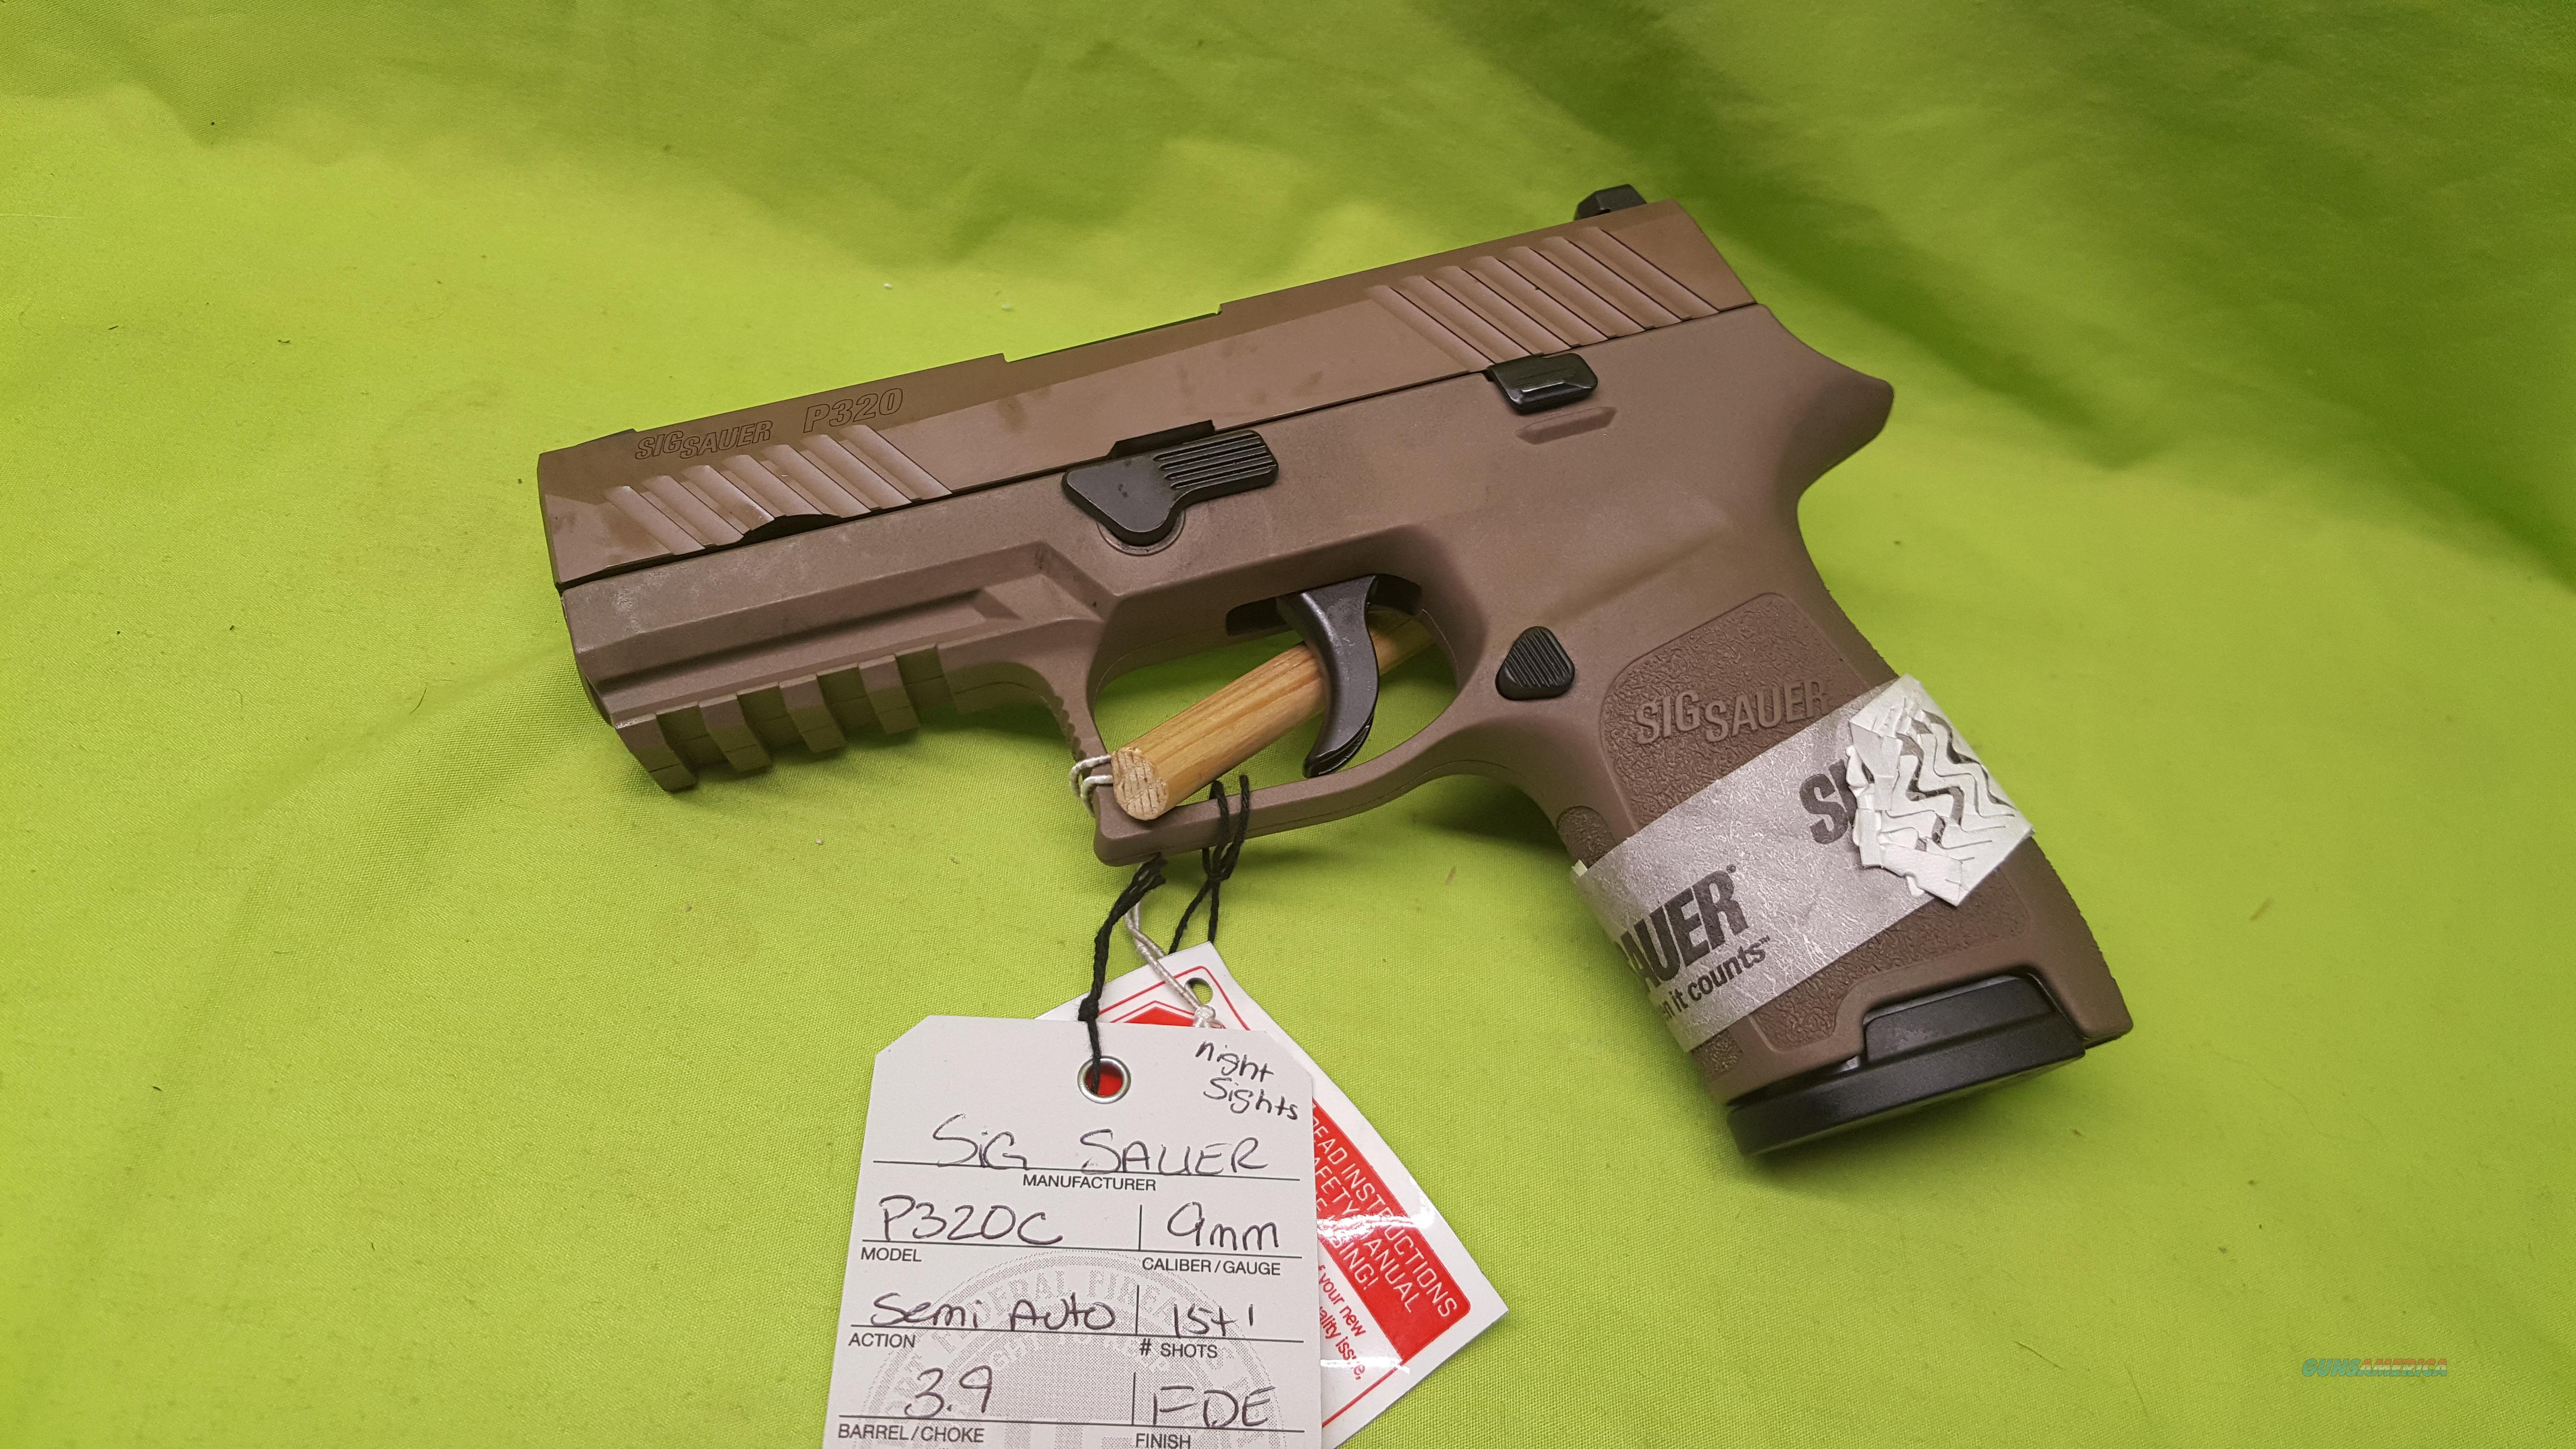 SIG P320 C COMPACT 9MM 9 FDE NS 3.9 15RD STRIKER  Guns > Pistols > Sig - Sauer/Sigarms Pistols > P320